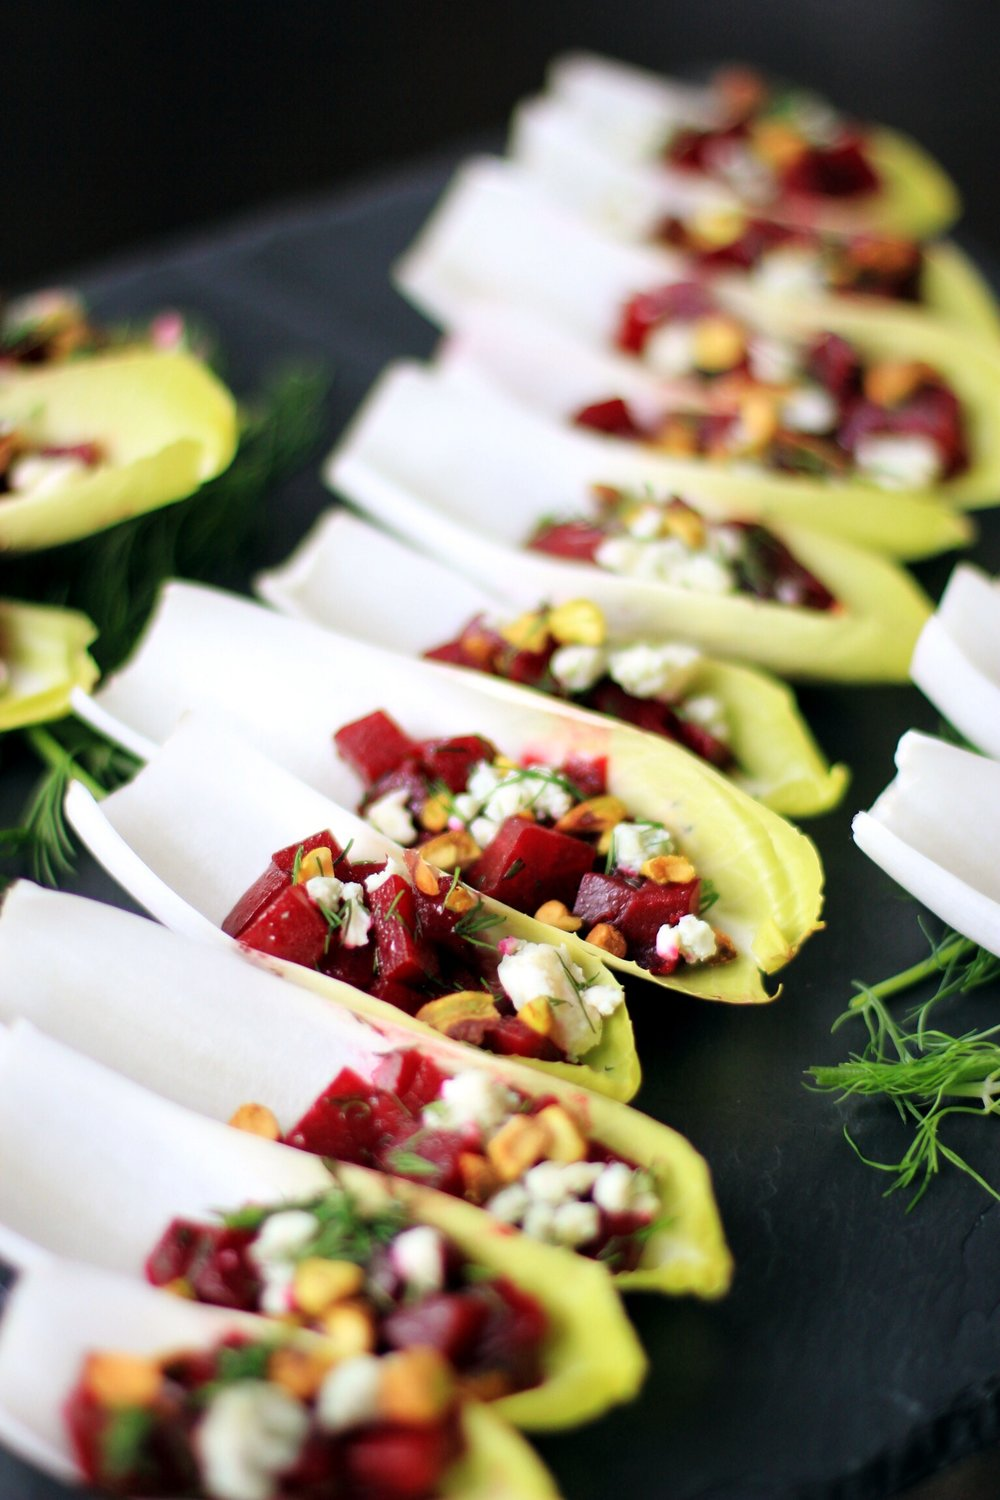 Endive with marinated beets, gorgonzola, and pistachios - The Pastiche